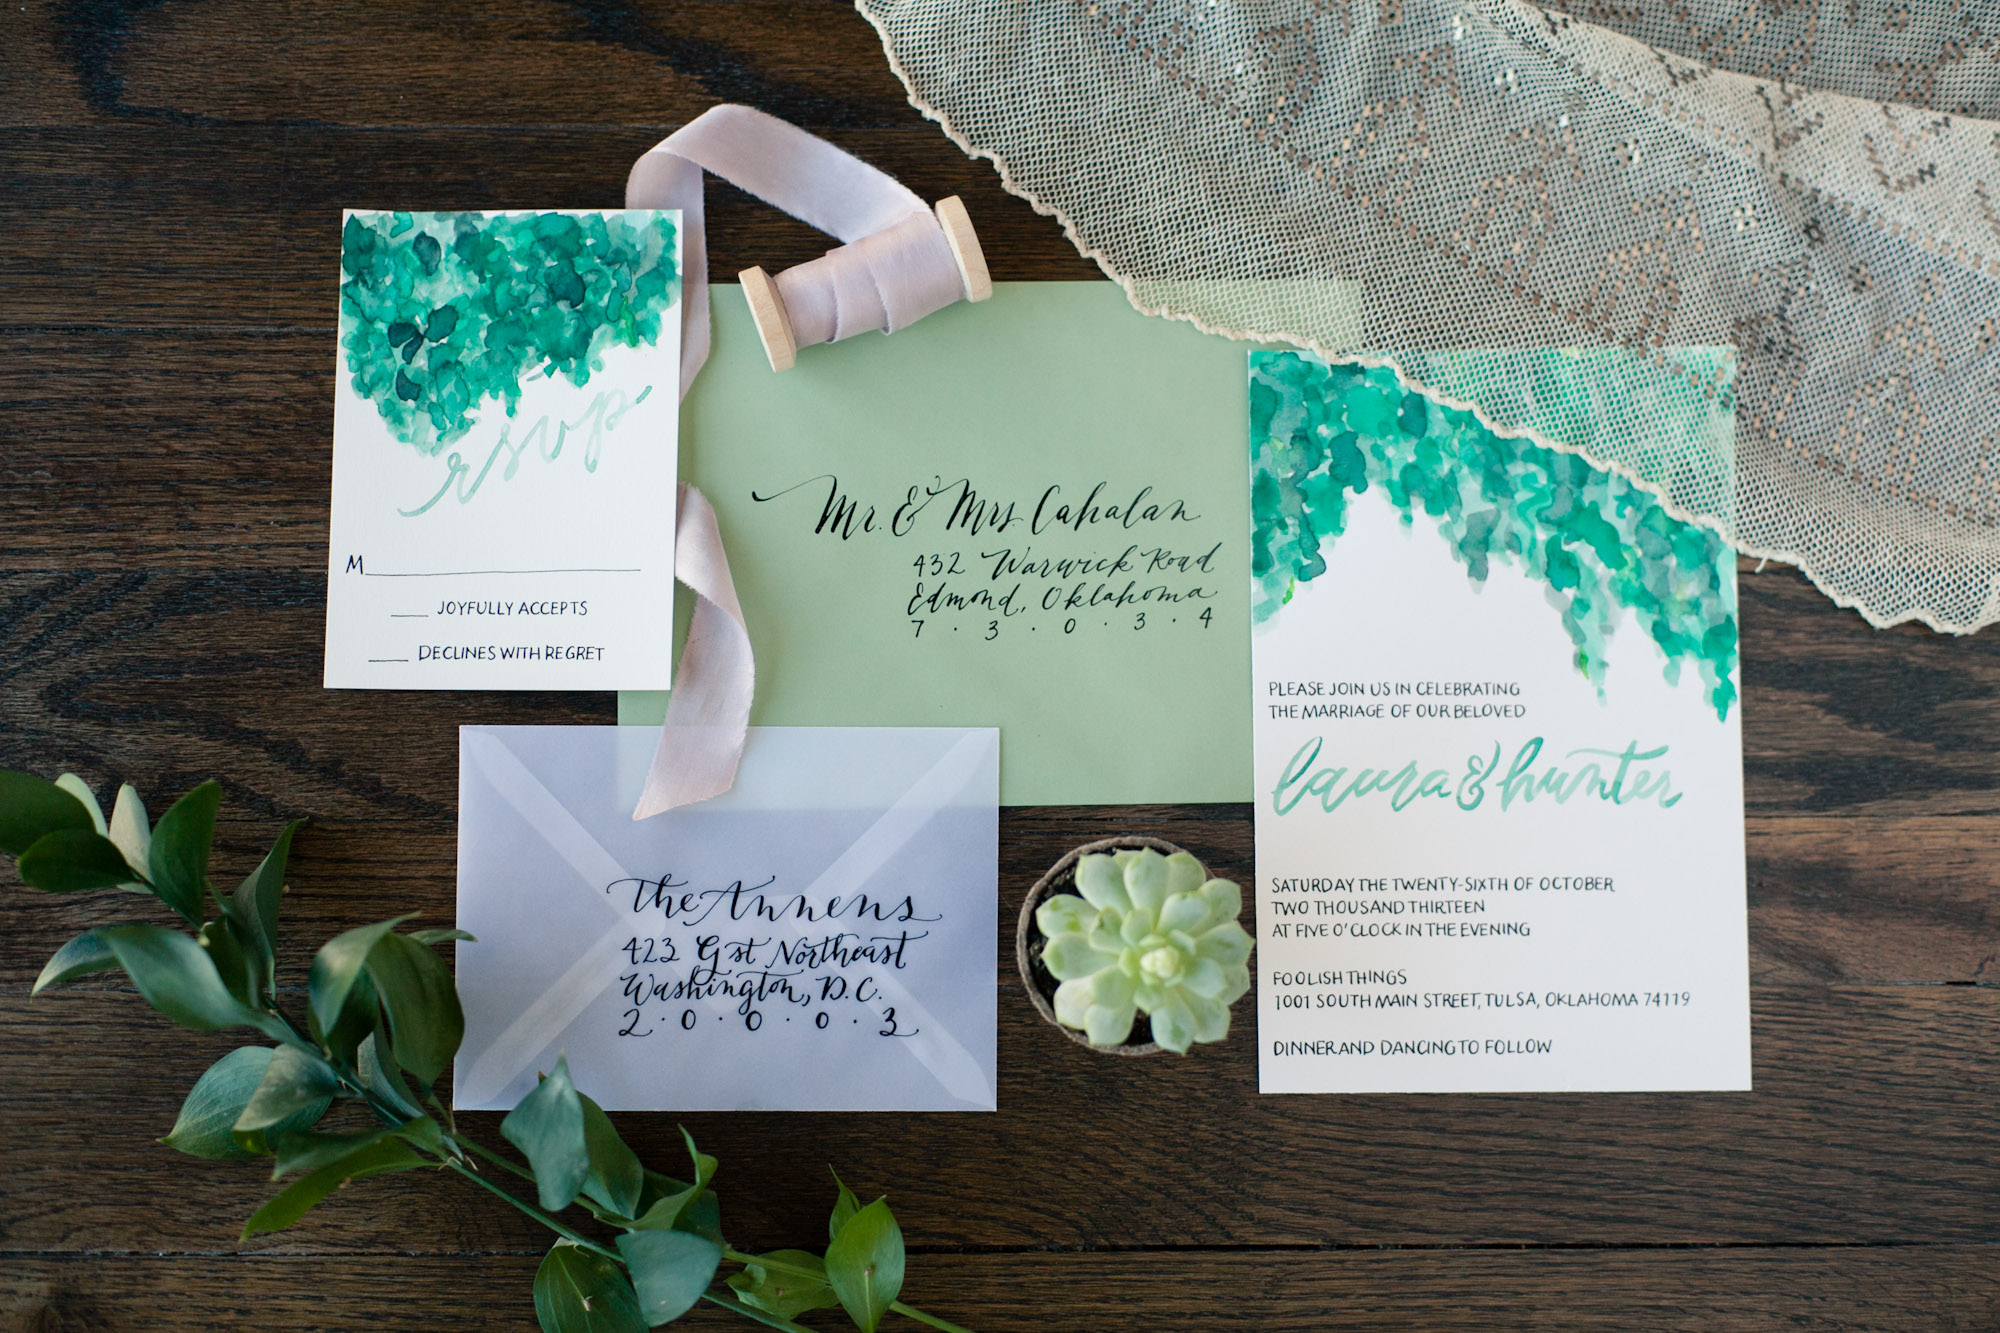 We were lucky enough to work with the following vendors for our fist shoot!  Photography: BCreative Tulsa   Desserts: Antoinette Baking Co.   Flowers: Ever Something  Wedding Dress: Abelina's Boutique   Invitations: Sending Heart Strings   Rentals: Party Pro   Hair and Make Up: Kaci Wright with Dolce Salon